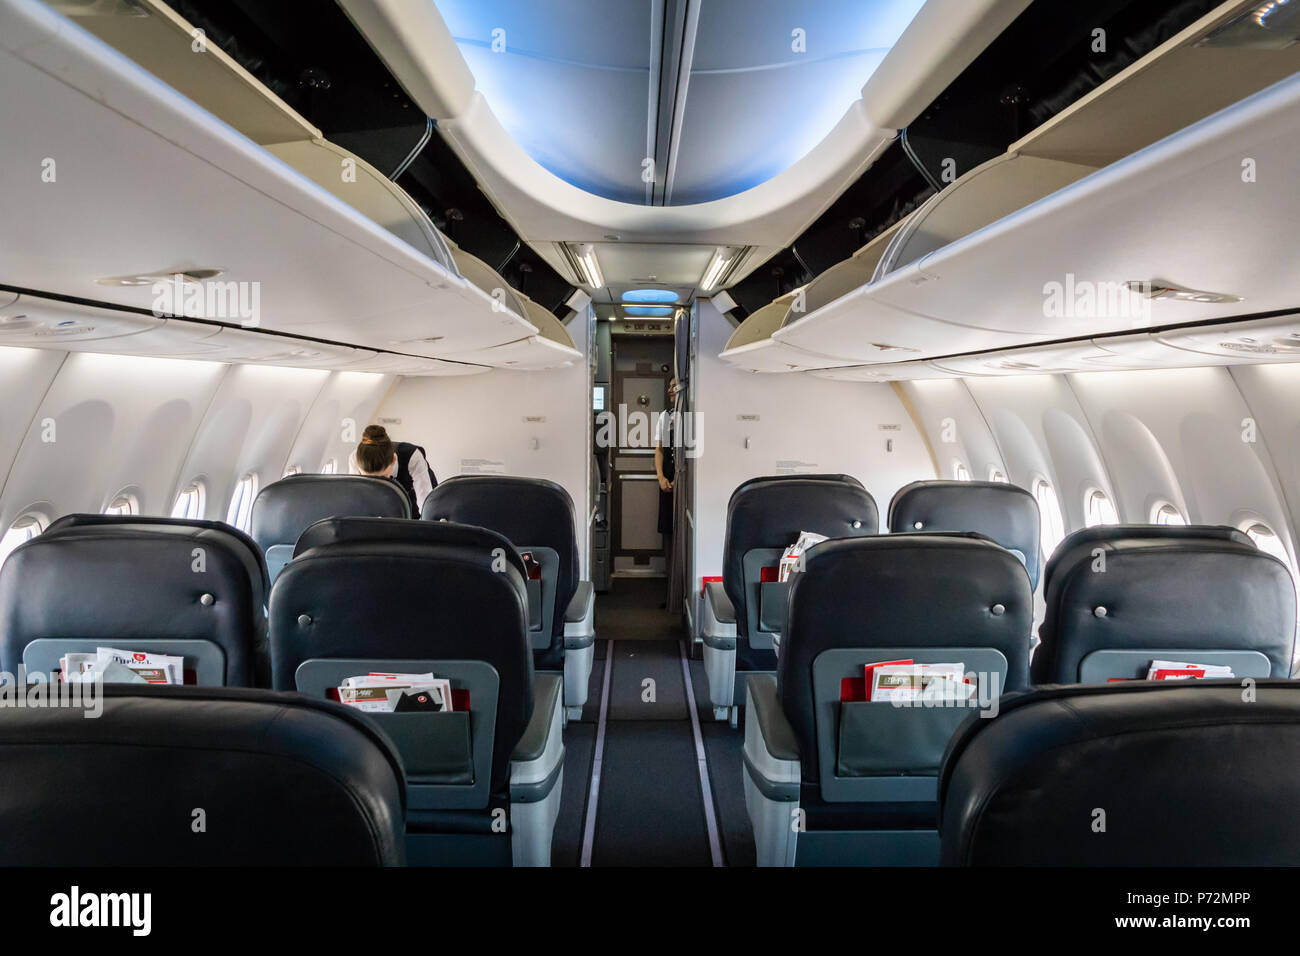 Istanbul, Turkey - June 2018: inside of Turkish airlines aircraft.   Turkish airlines is the national flag carrier airline of Turkey - Stock Image